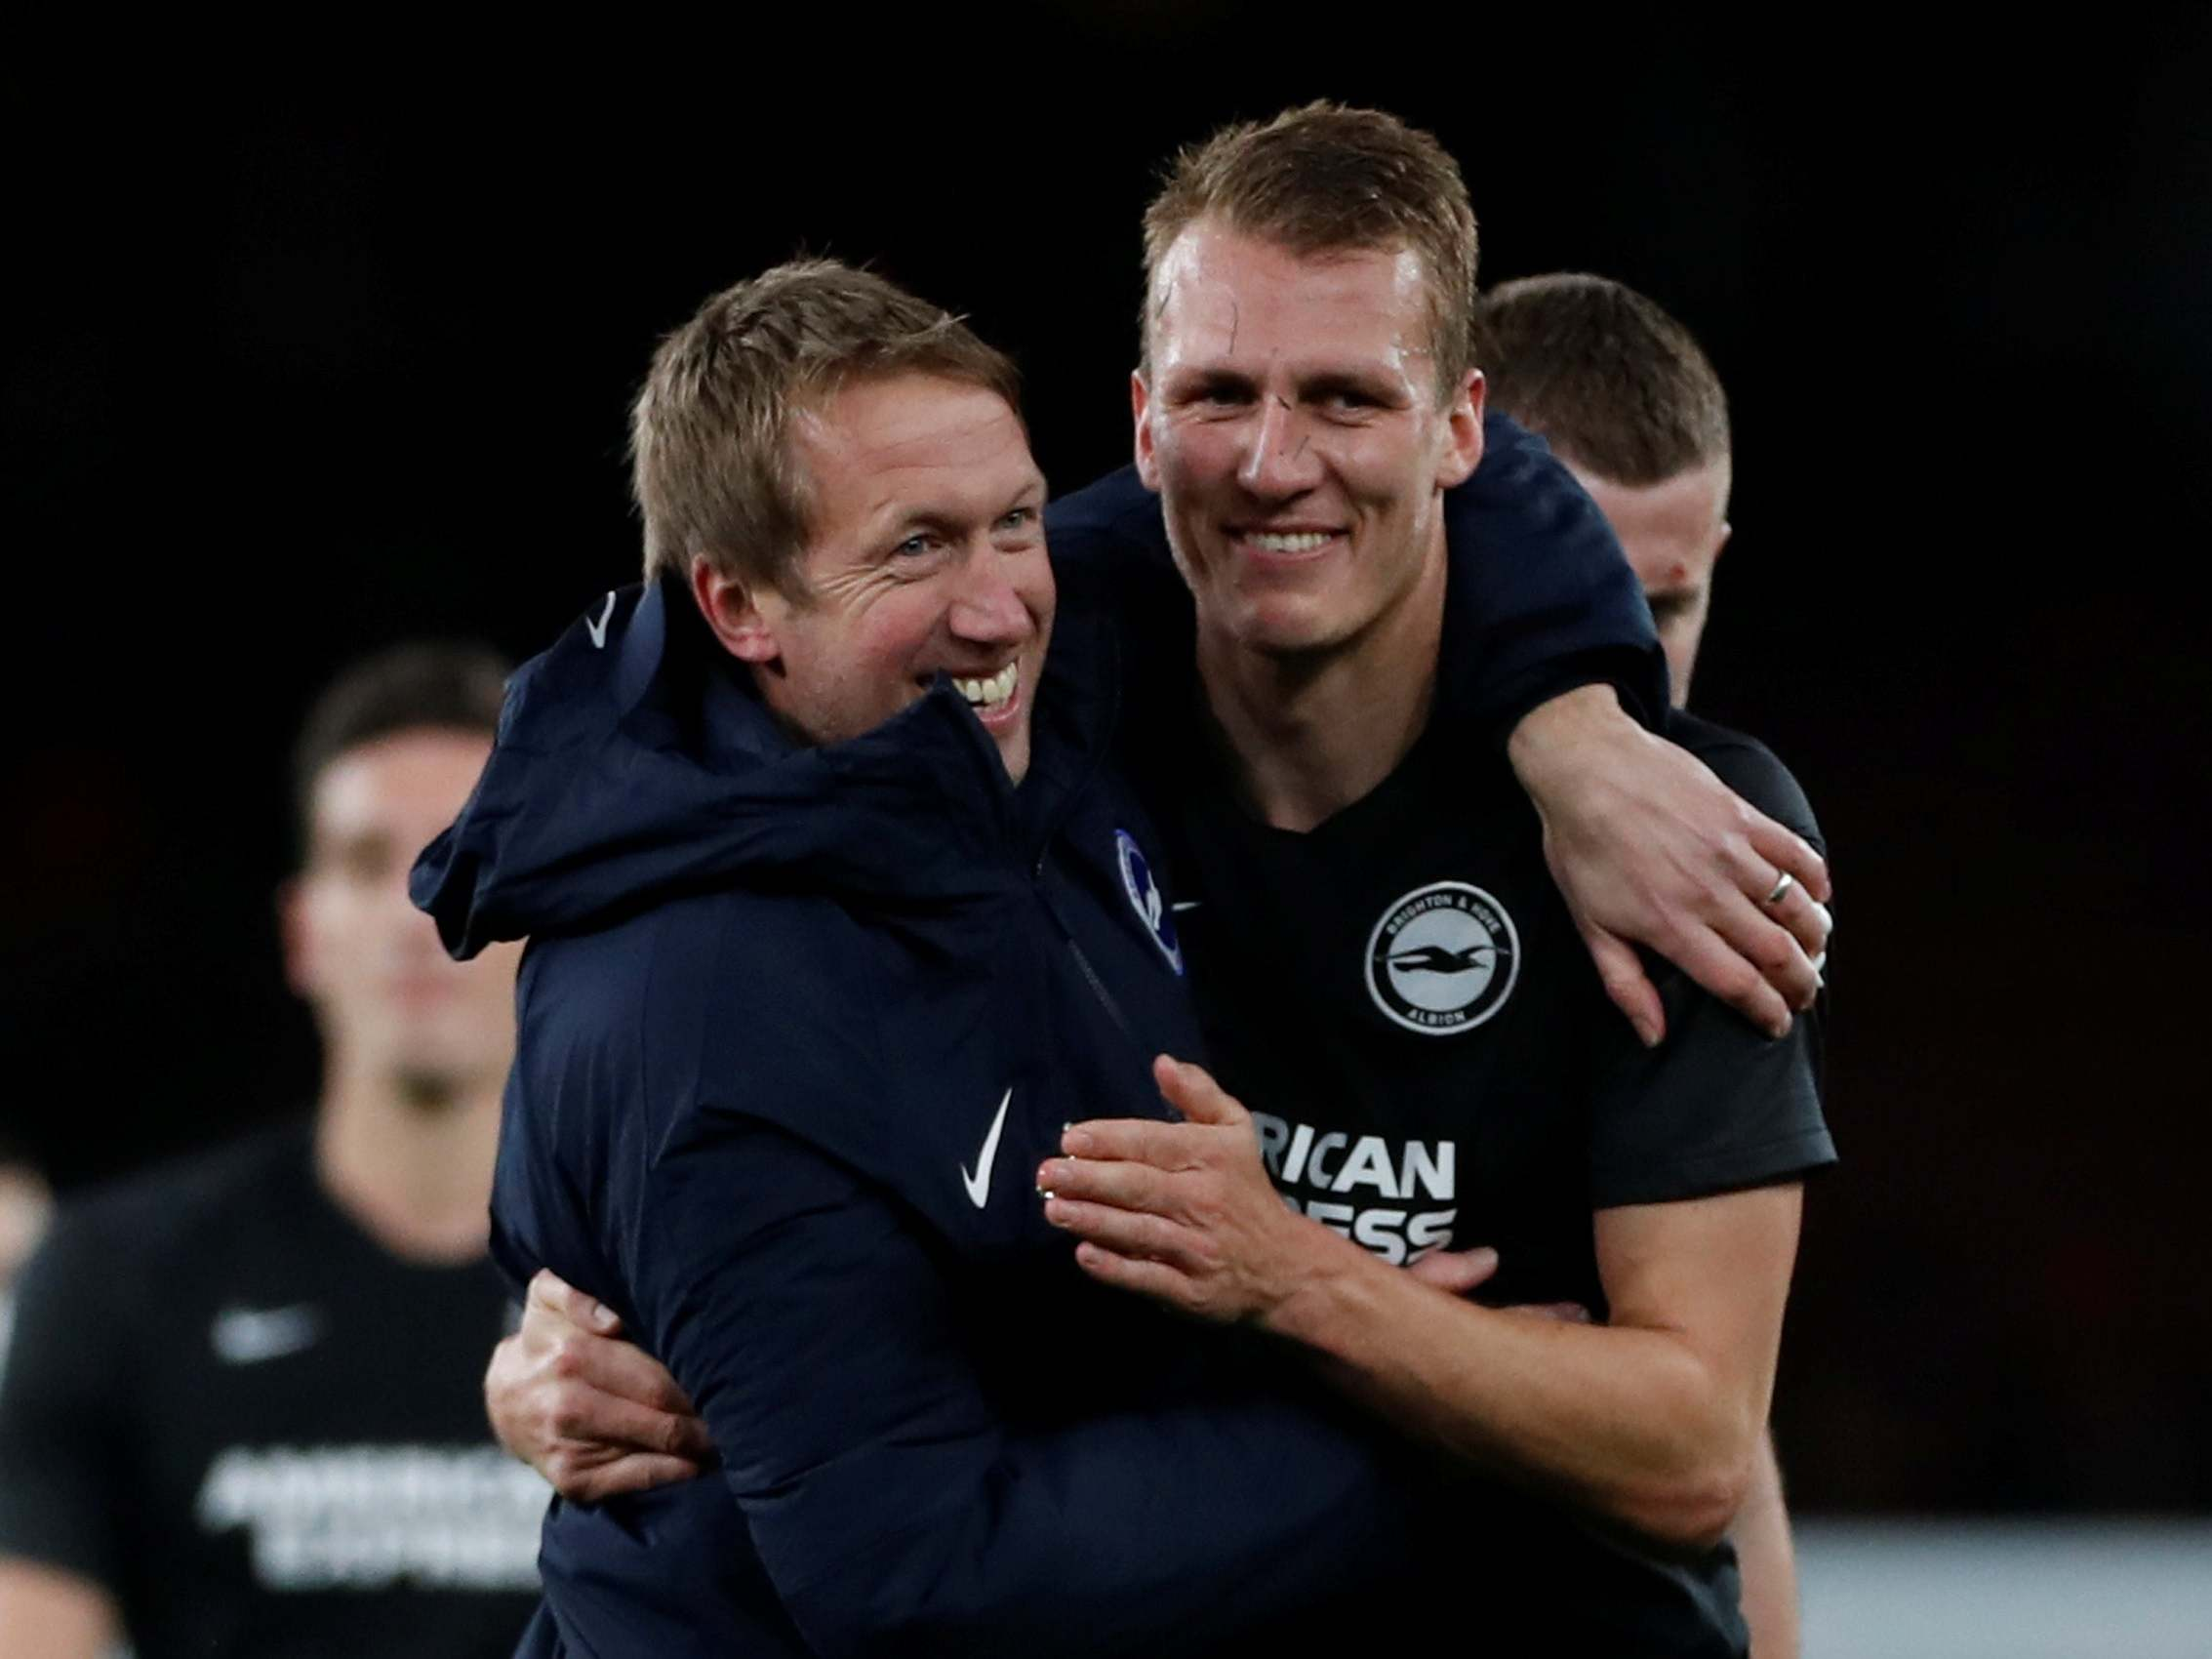 Lifeless Arsenal should take nothing away from what Graham Potter has brought to galvanised Brighton